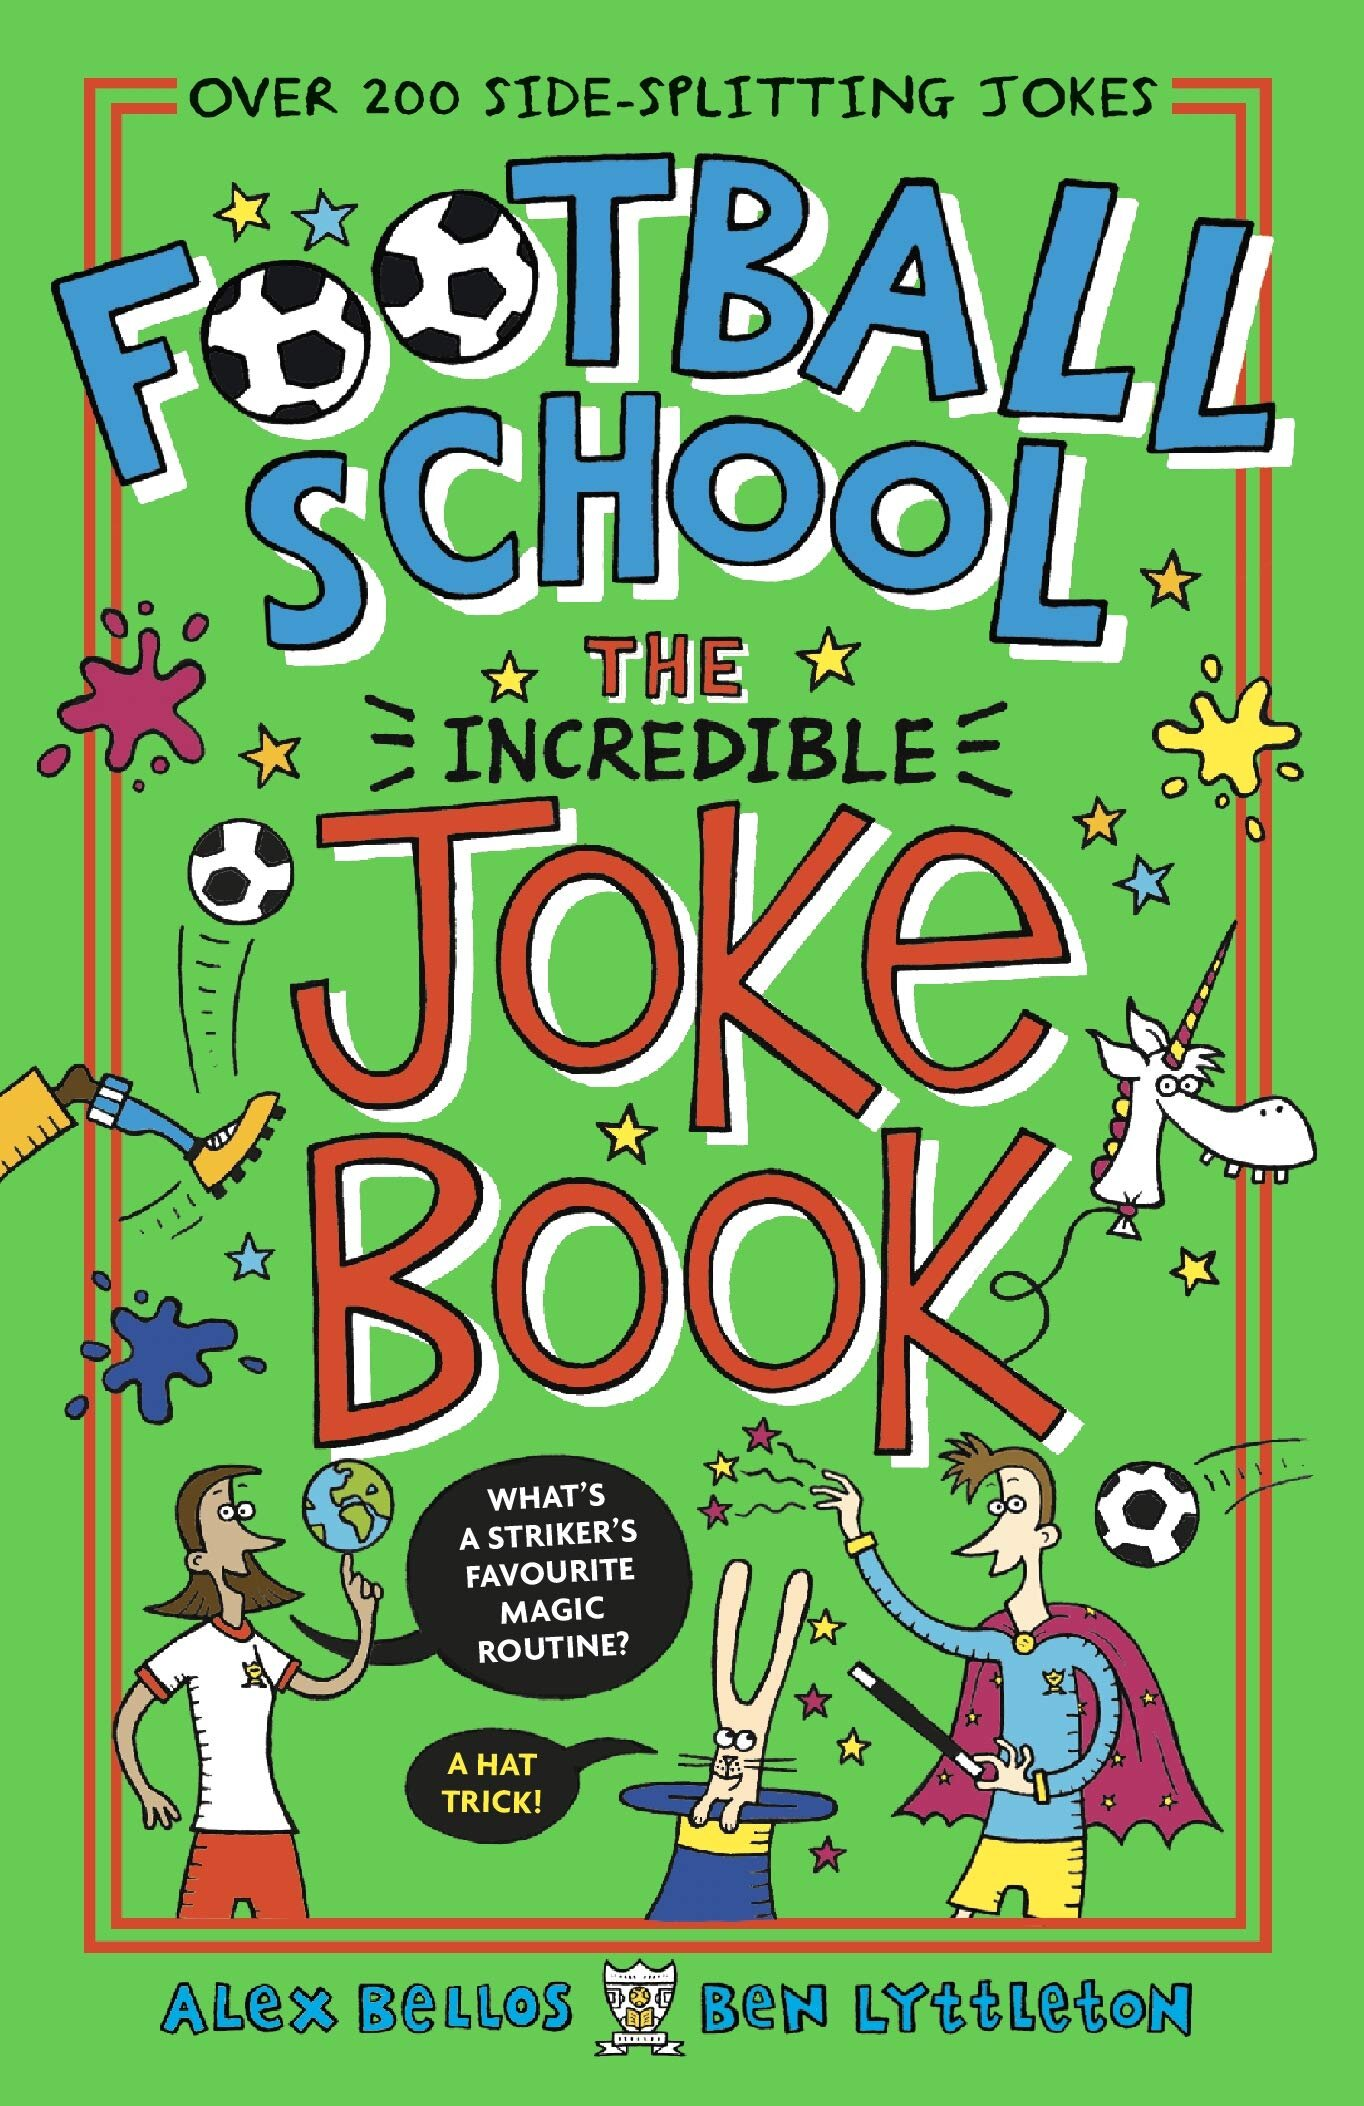 JOKE BOOK - Our latest title, the Incredible Joke Book, will be out on November 7.